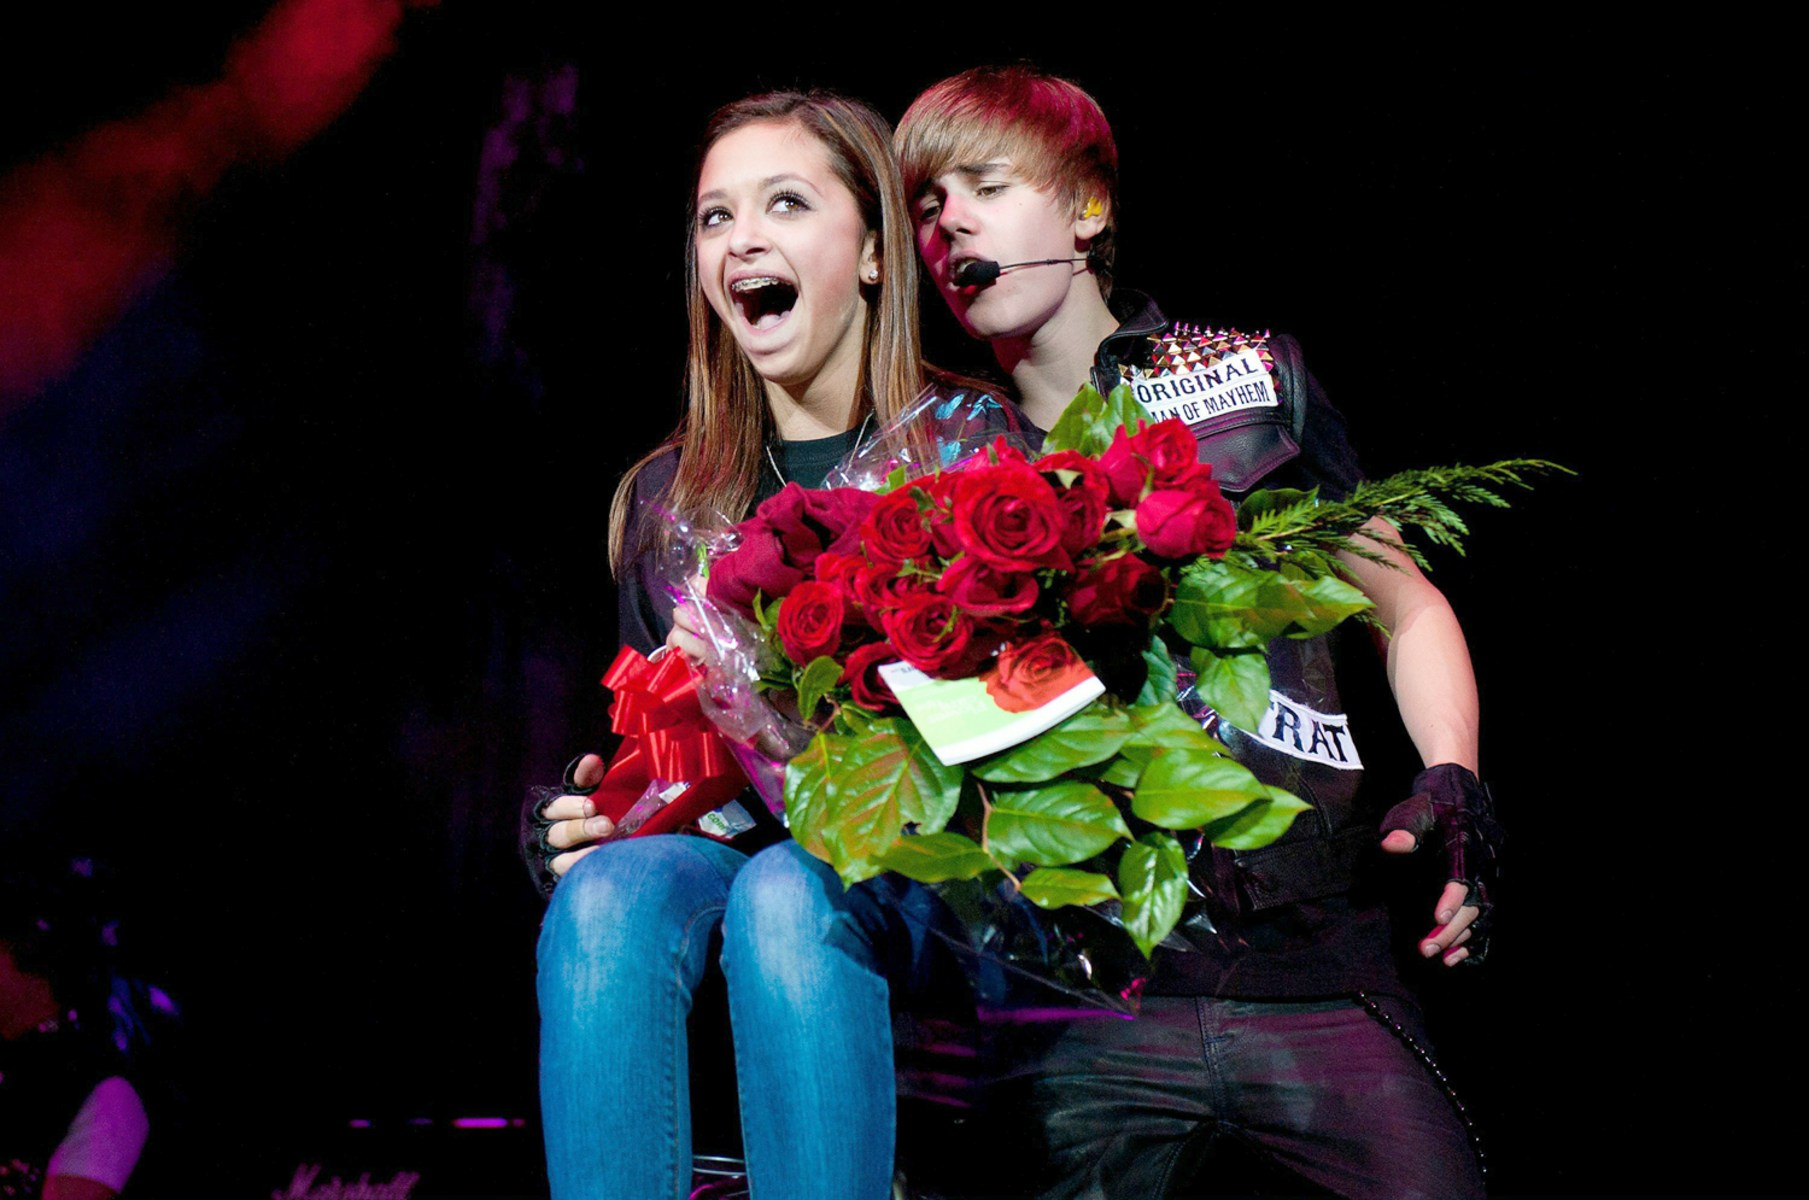 bieber single catholic girls Justin bieber has made some  high school grades in interview with martha  bieber also confessed in the interview that he's currently single at.